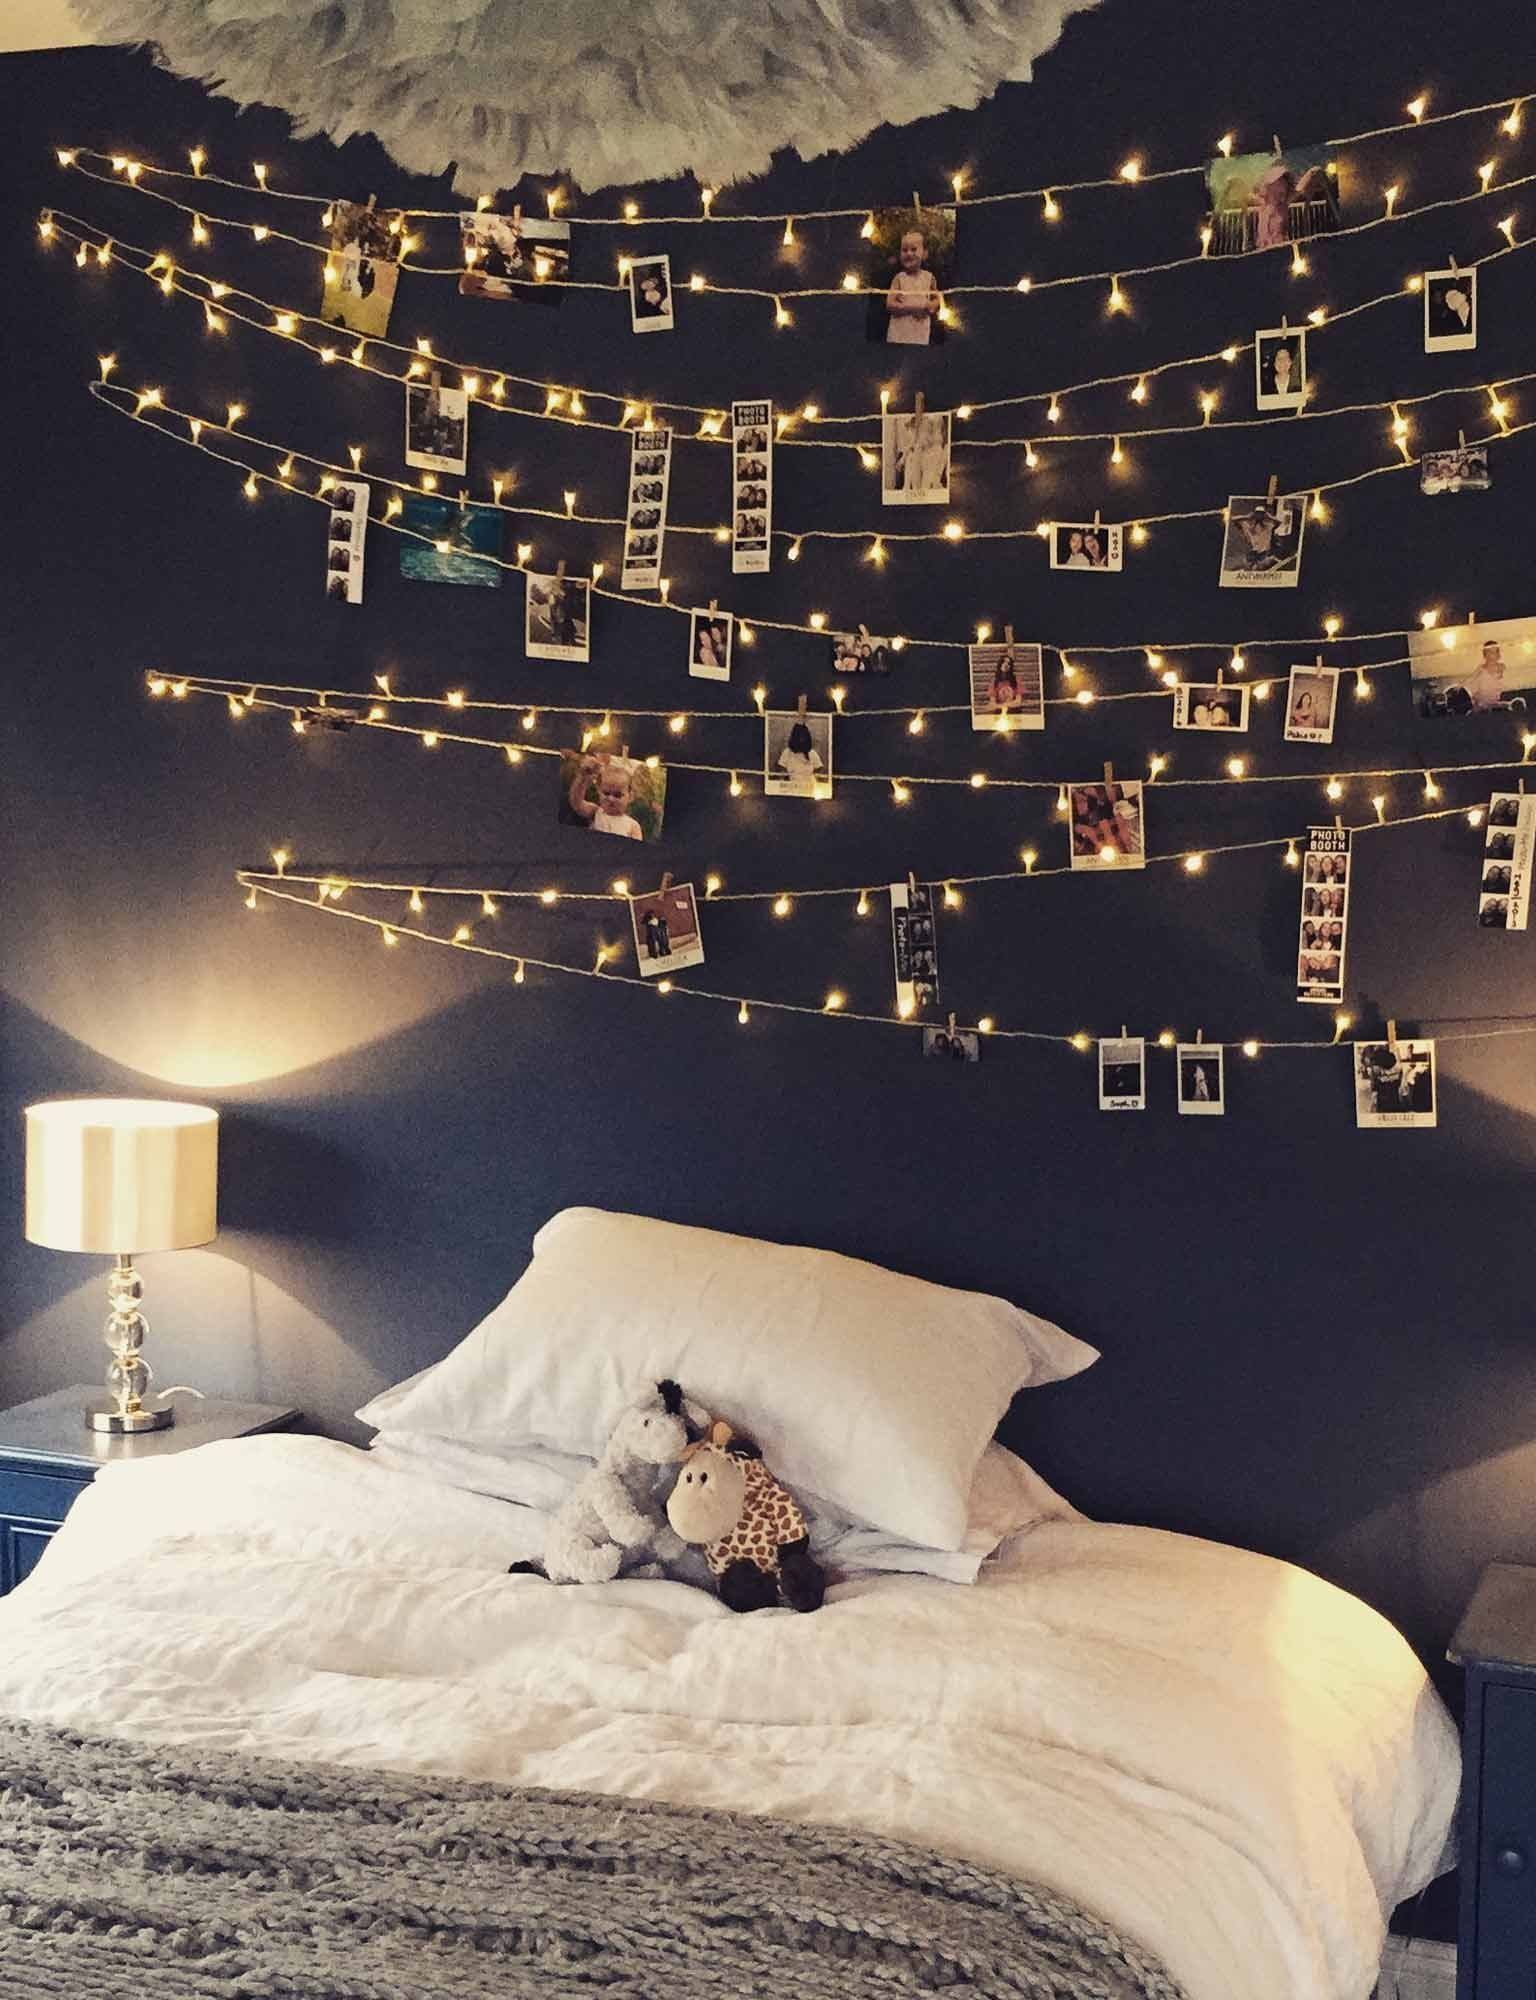 Tumblr Zimmer Inspiration 50 Tolle Schlafzimmer Deko Ideen Für Teenager Fotogirlande Mit Christmas Lights In Bedroom Fairy Lights Bedroom Fairy Lights Room